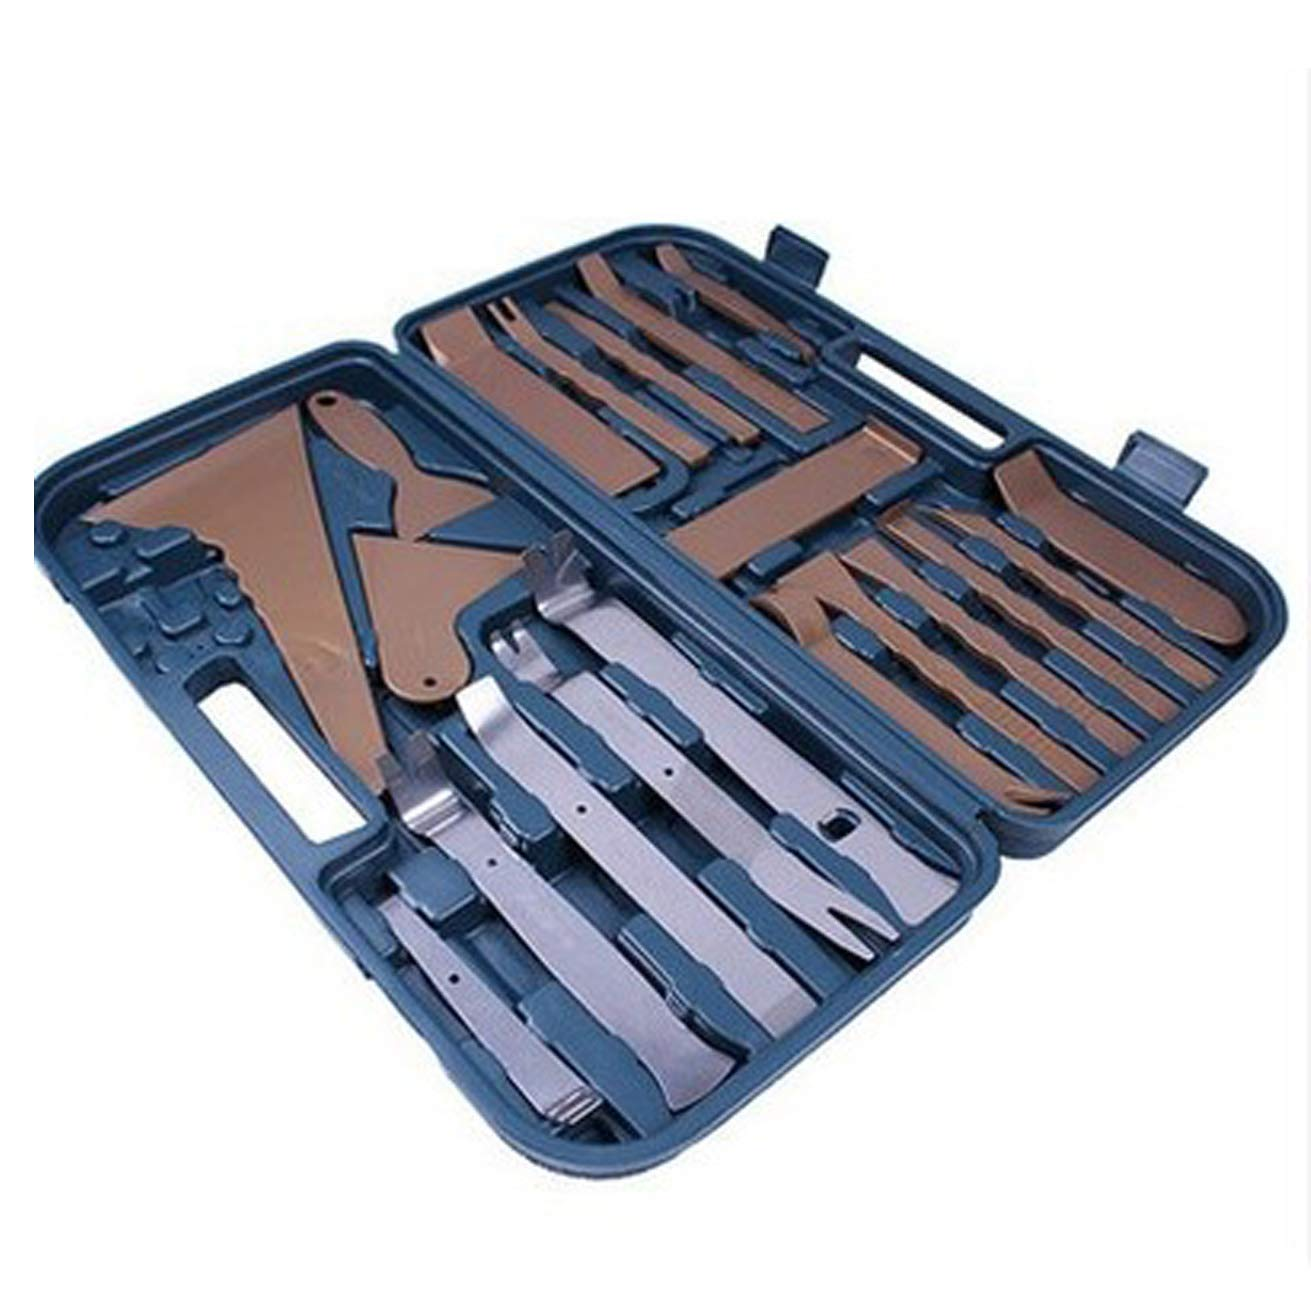 WEPECULIOR 36 Pcs/Set Auto Door Clip Panel Trim Removal Tool Kits for Car Dash Radio Audio/Household Installer Pry Tool Fastener Remover with Case? by WEPECULIOR (Image #3)